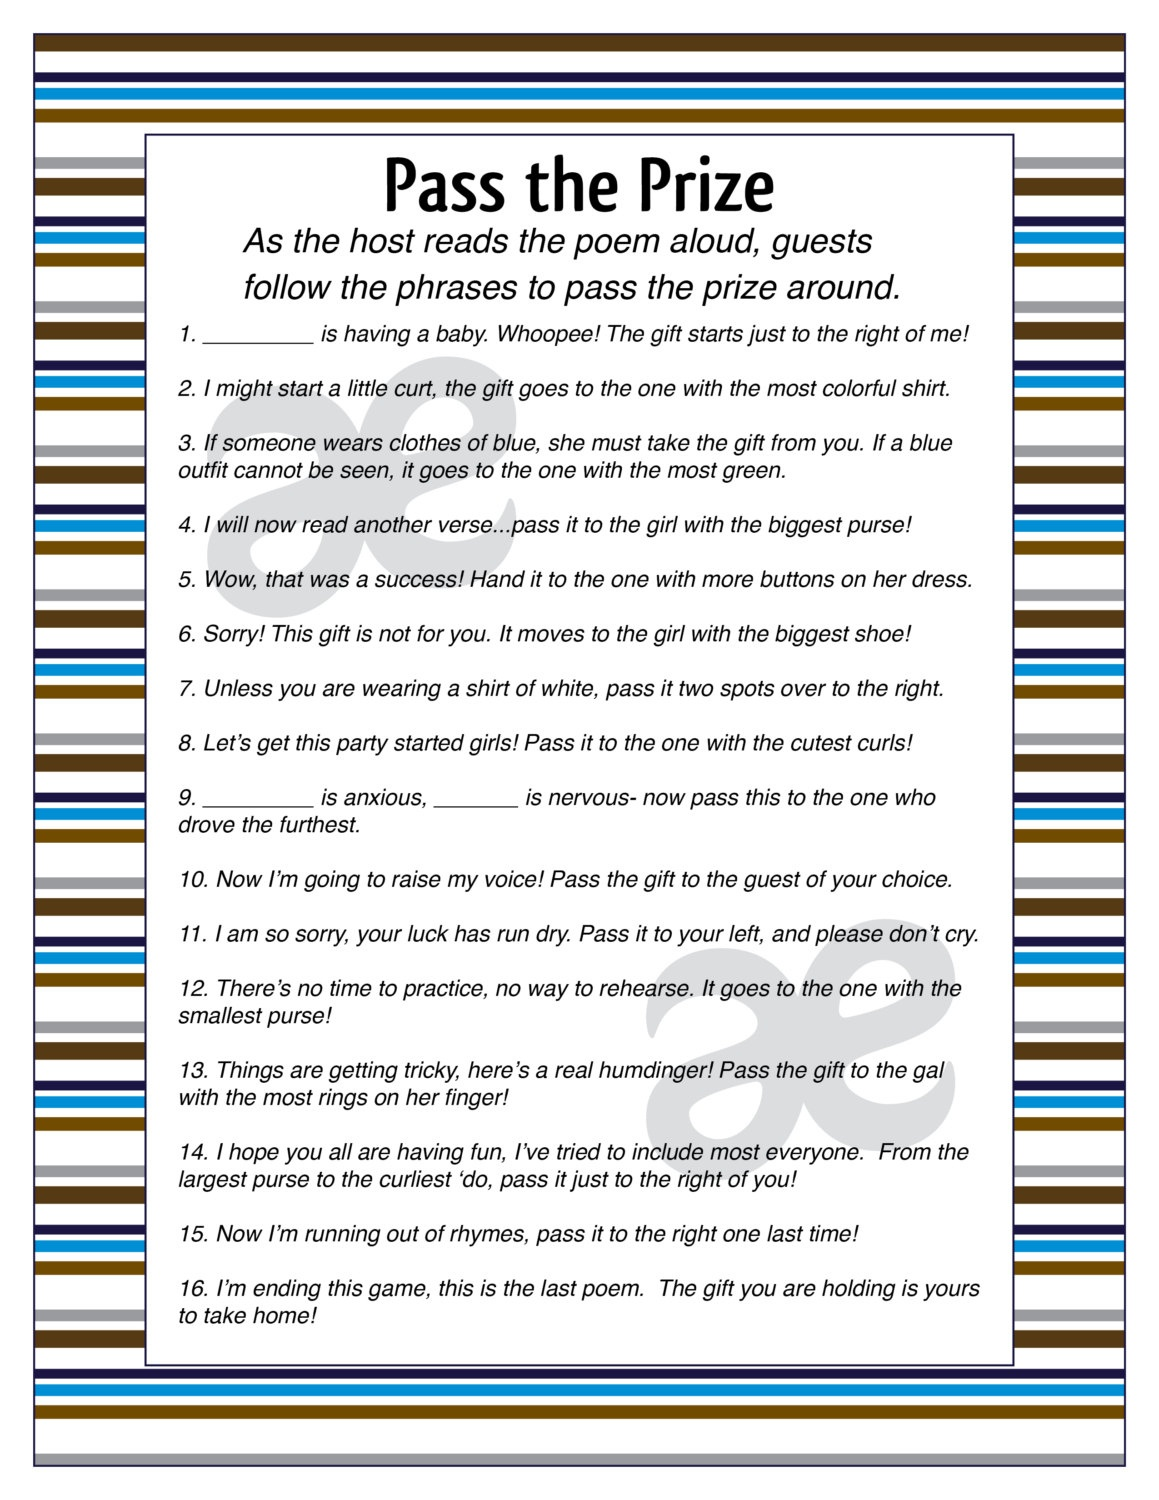 New Baby Shower Games Pass The Gift - Pass The Prize Baby Shower Game Free Printable